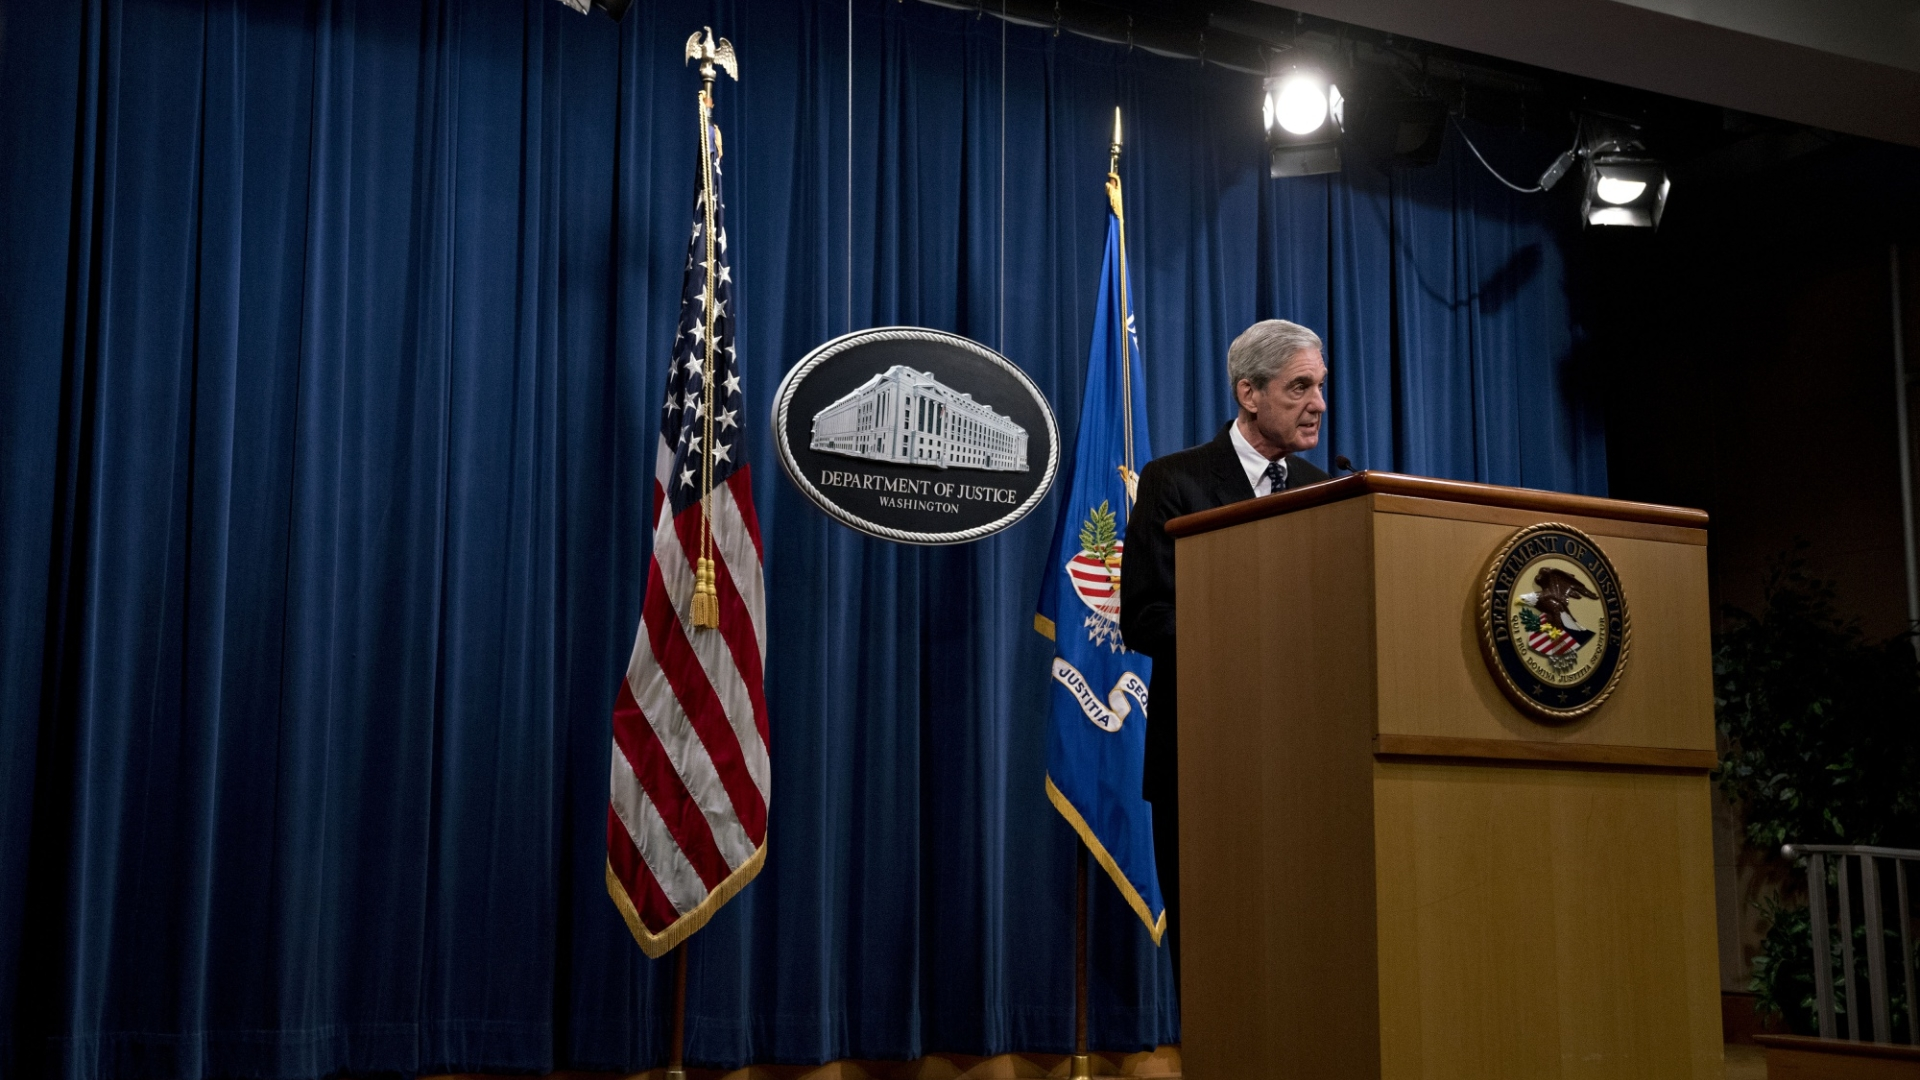 Mueller to testify to Congress in open session about his investigation